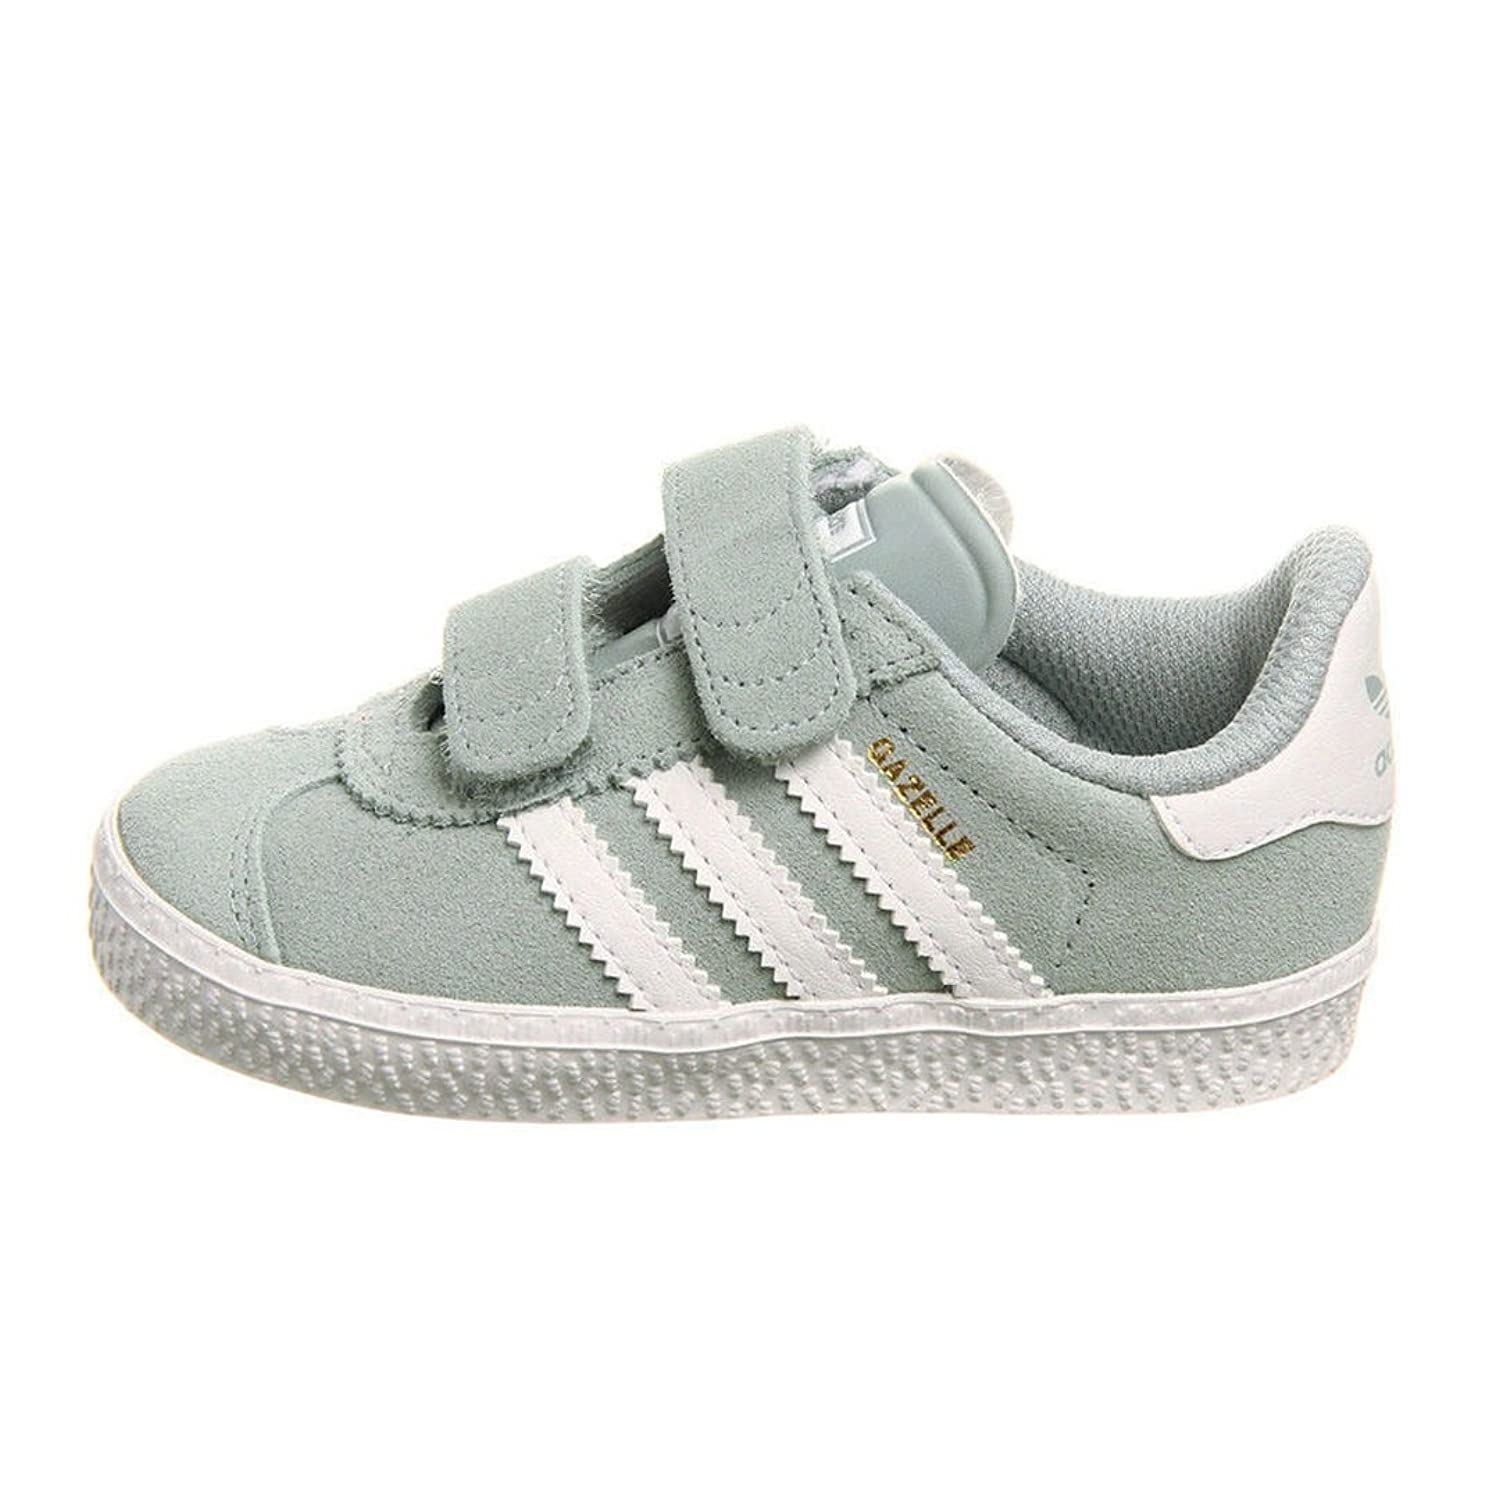 Kids Baby Toddler Boys Adidas Gazelle 2 Light Grey/White Suede Velcro  Trainers (UK 3/US 4/EU 19): Amazon.co.uk: Shoes \u0026 Bags